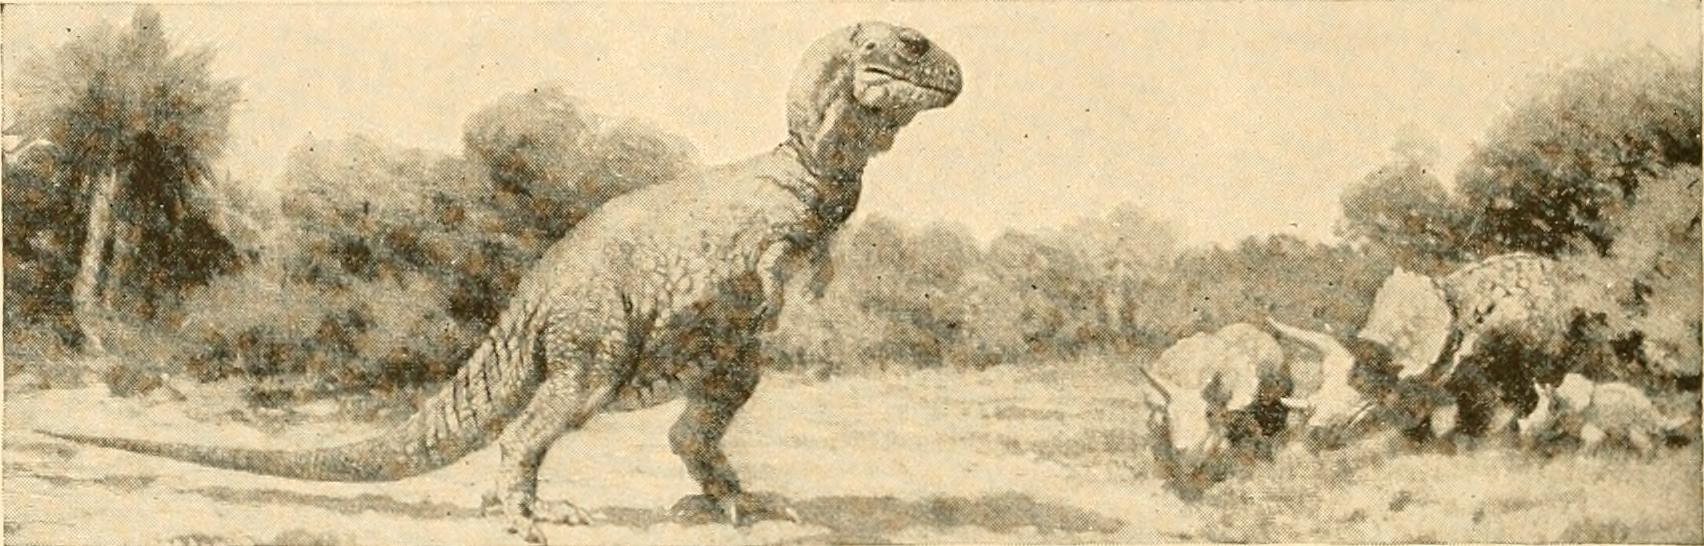 This 1917 drawing of a T. rex and a family of Triceratops depicts dinosaurs as plodding and slow. Most paleontologists believed that dinosaurs simply went extinct due to failure to adapt.   Internet Book Archive Images/Wikimedia Commons  (Flickr API)